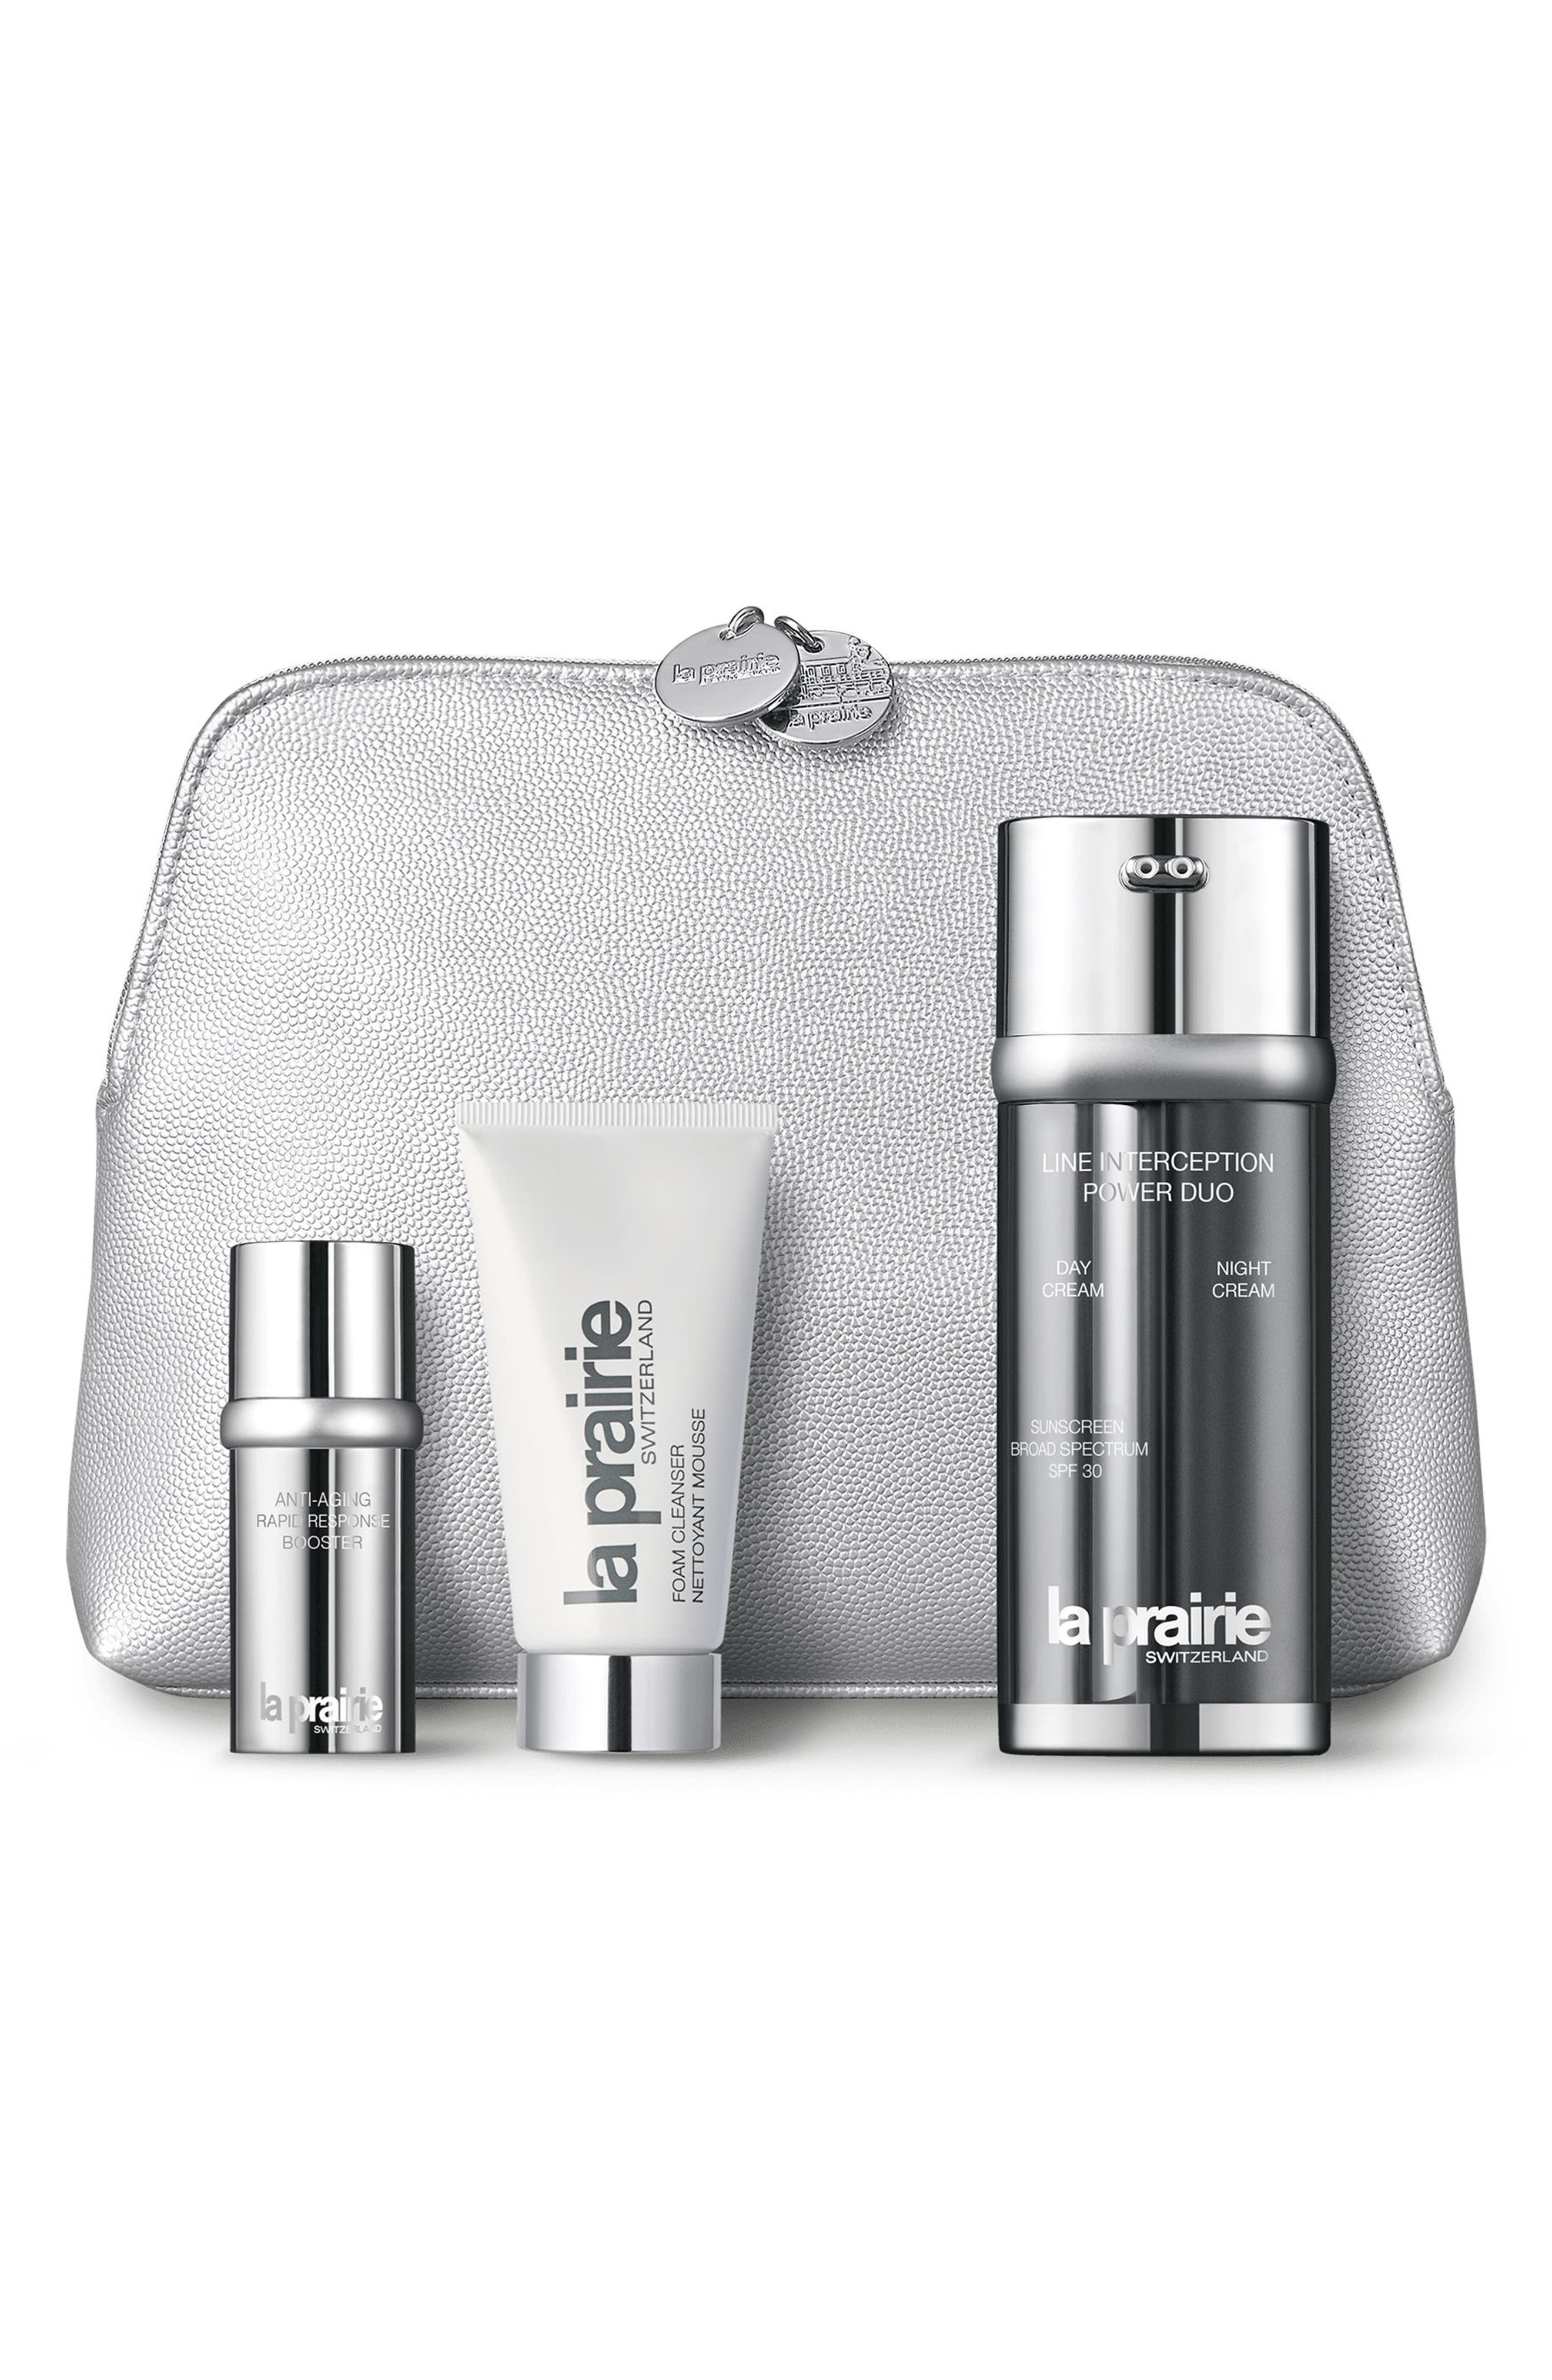 La Prairie Anti-Aging Essentials Set ($415 Value)